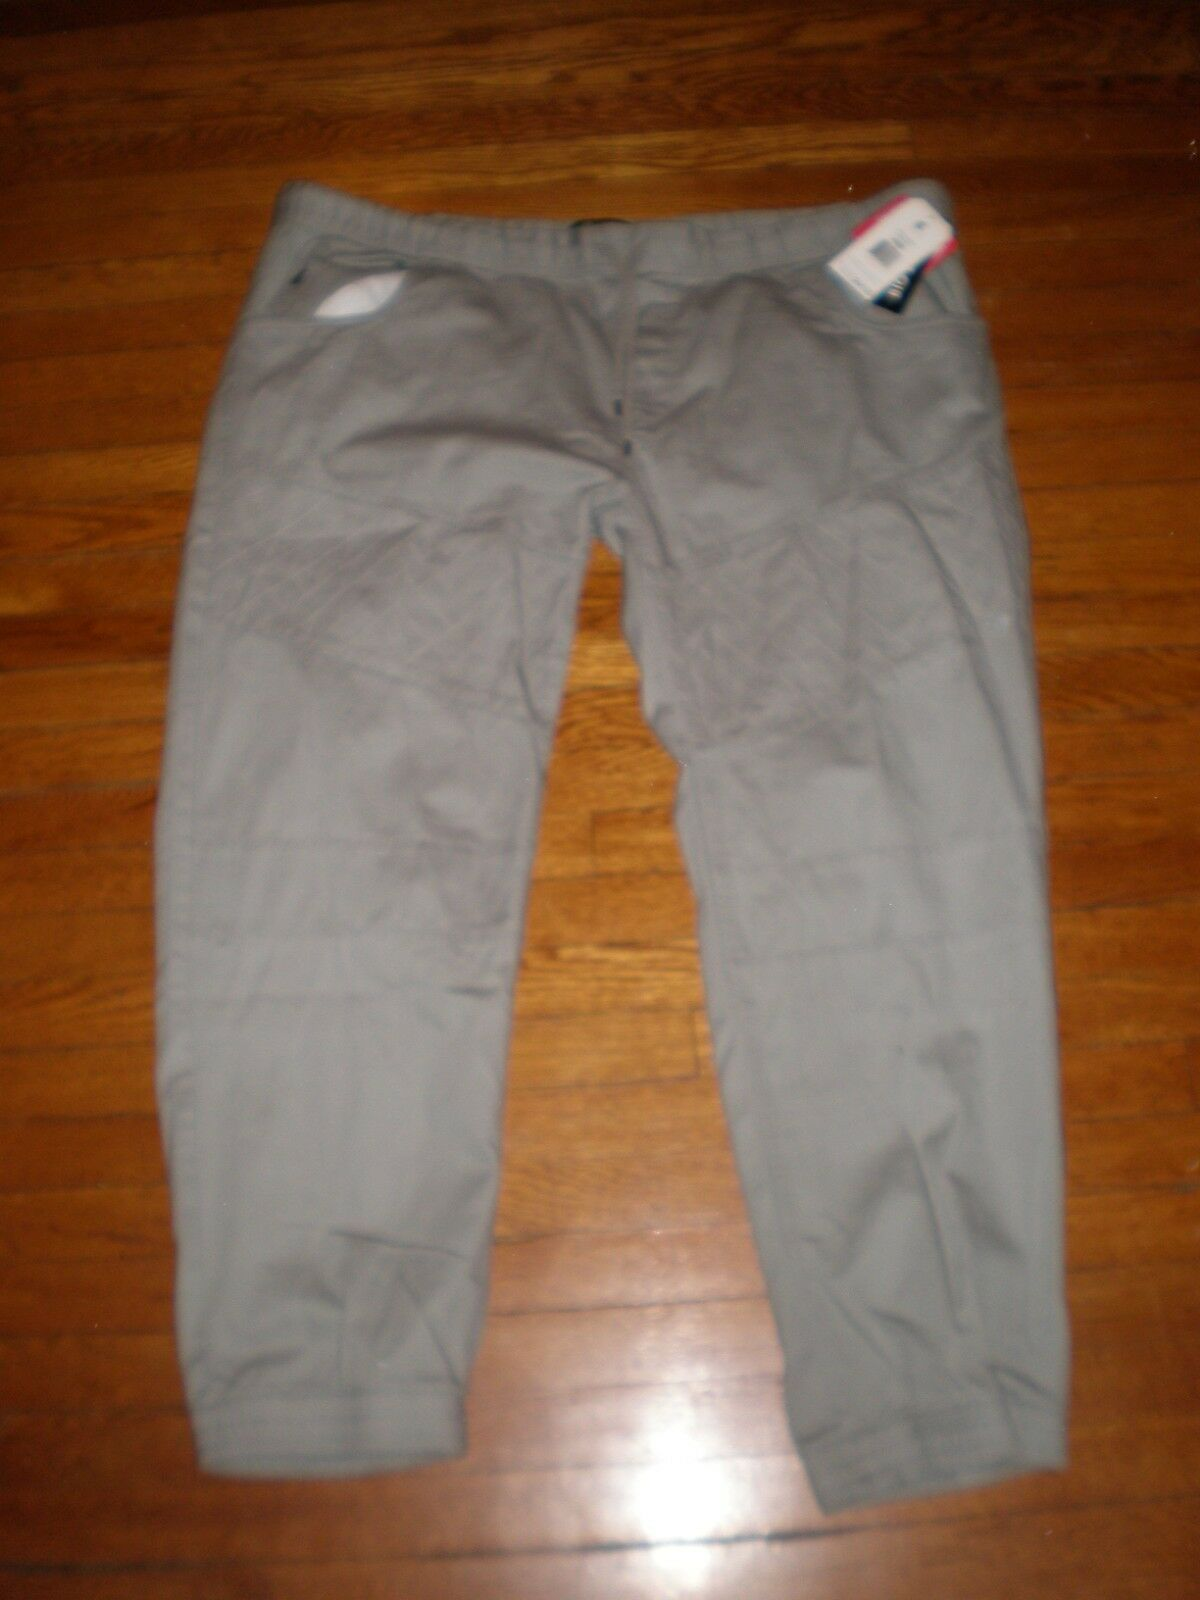 NWT ROCAWEAR CLASSIC FIT GREY JOGGER-SWEATPANTS SZ 4XB 4XL 4X